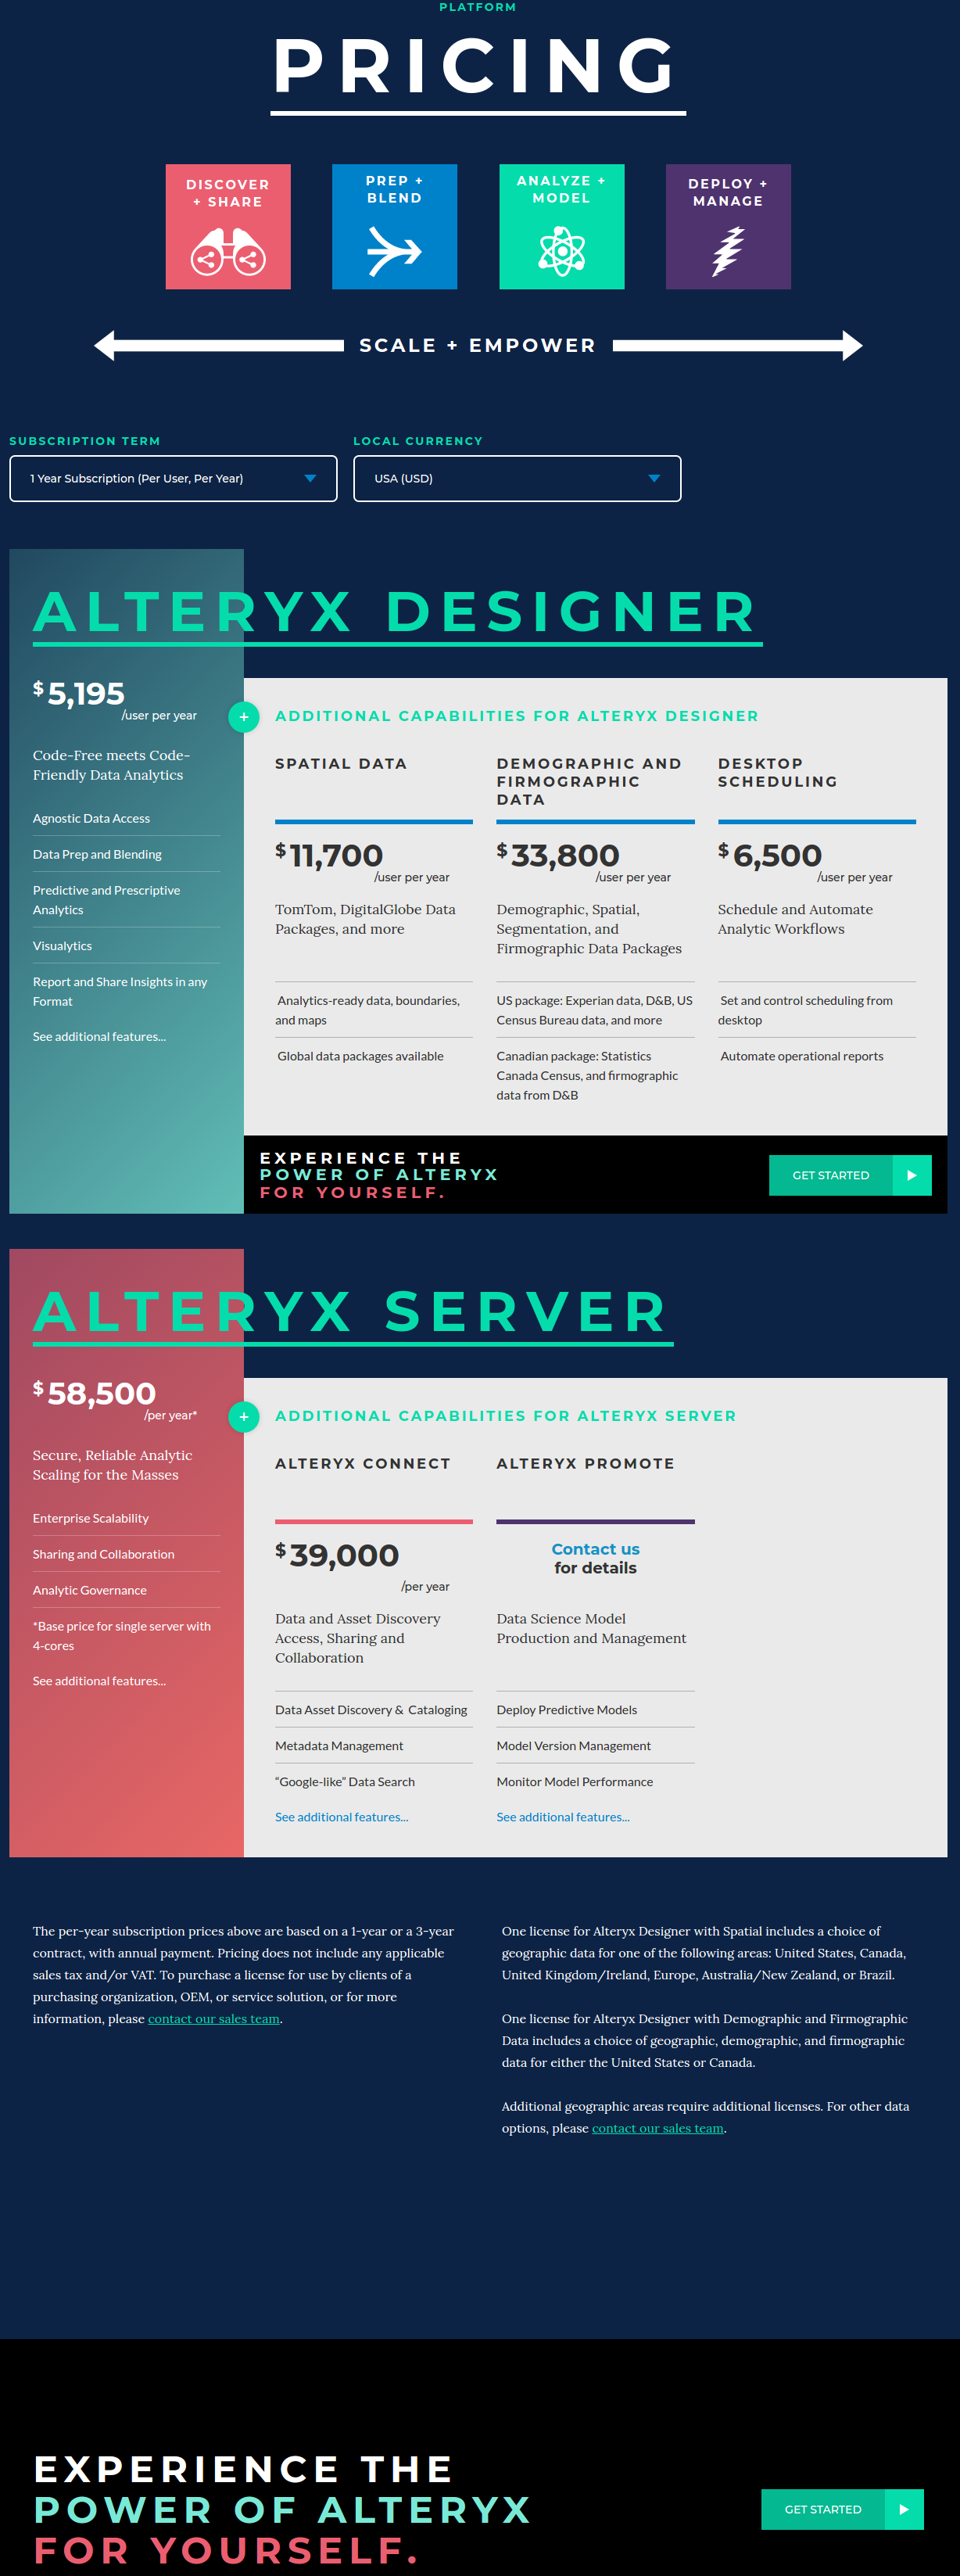 Alteryx Pricing, Reviews and Features (September 2019